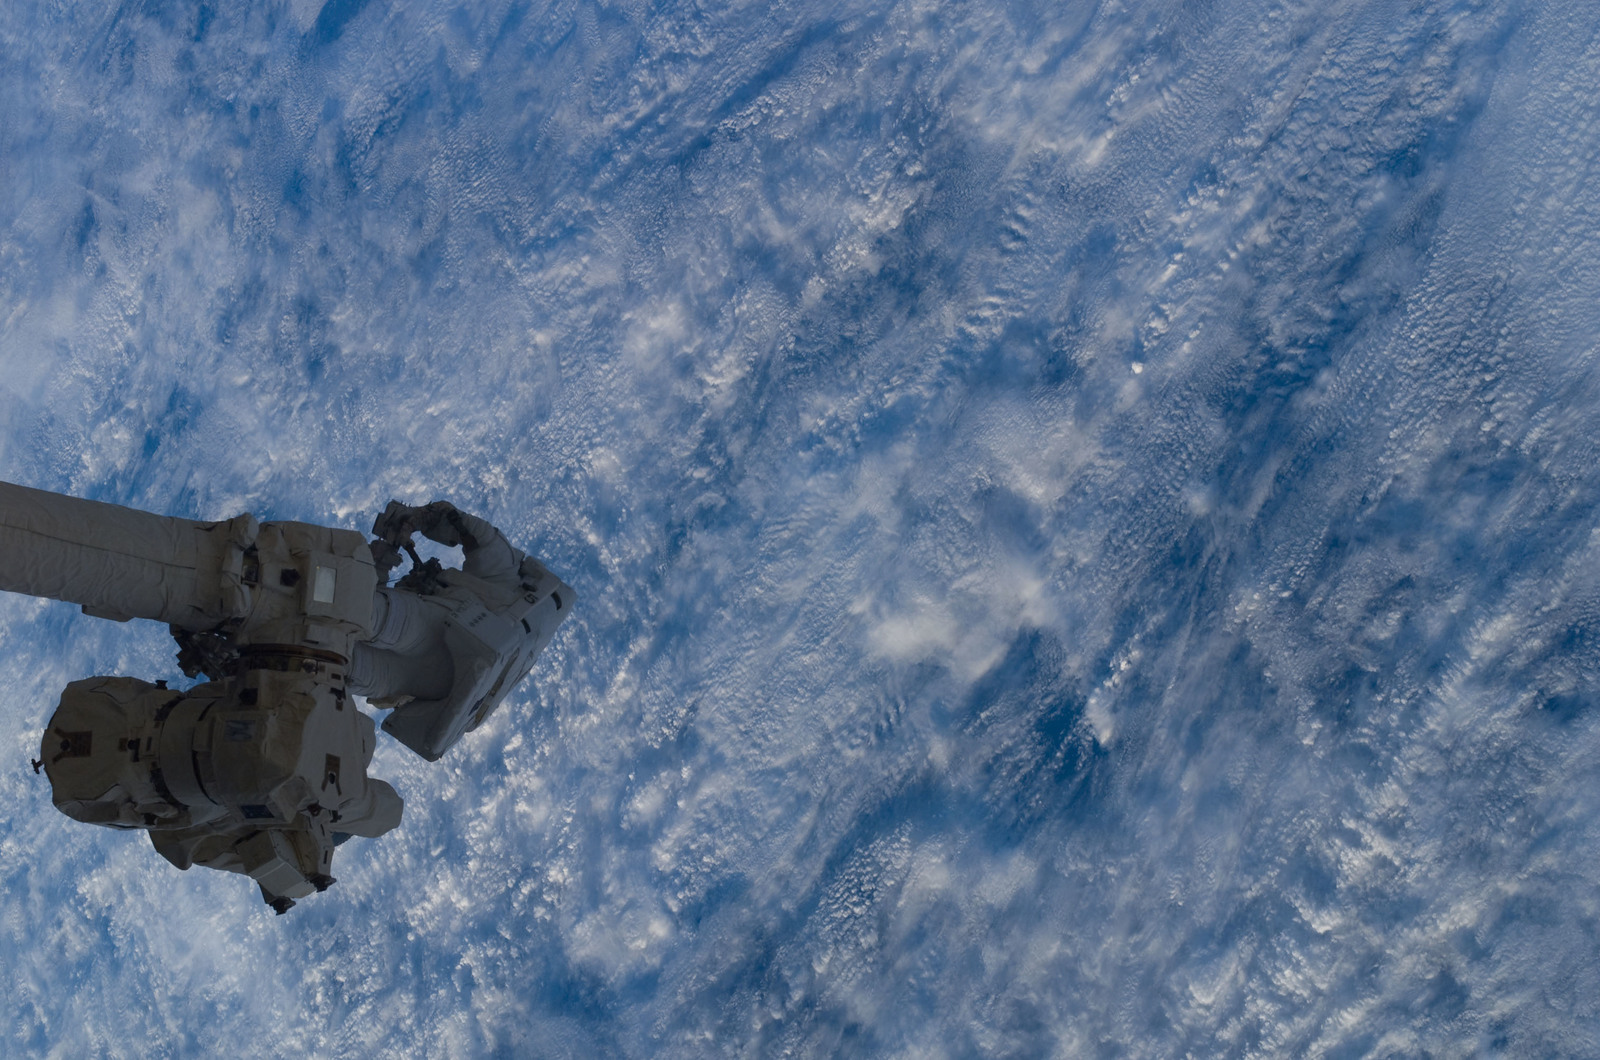 S114E6276 - STS-114 - Robinson on SSRMS Canadarm2 during EVA 3